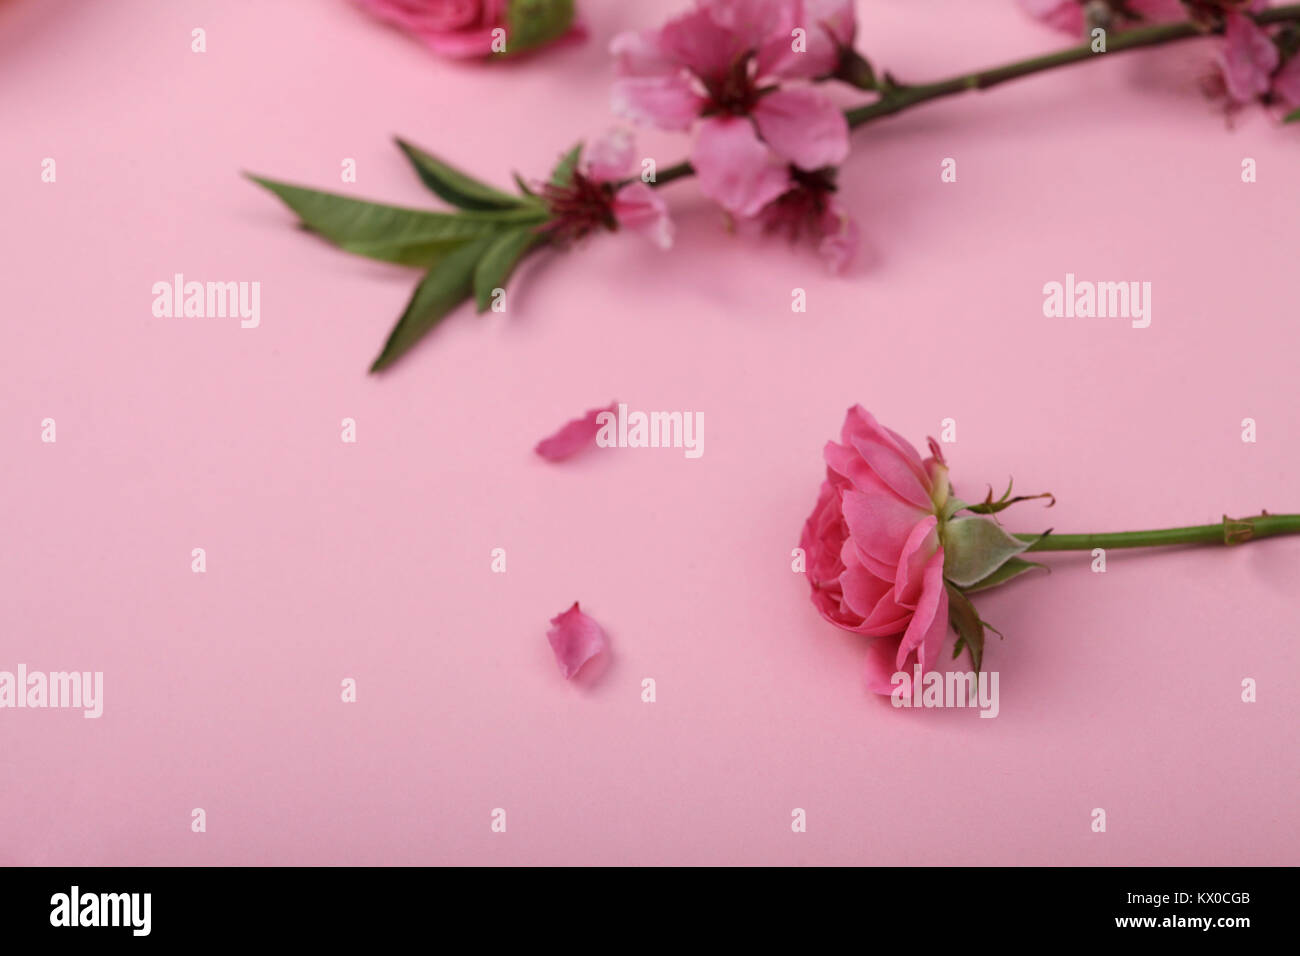 femininity, nature, aroma therapy concept. on the girlish pinky background there is brunch of oriental cherry with - Stock Image